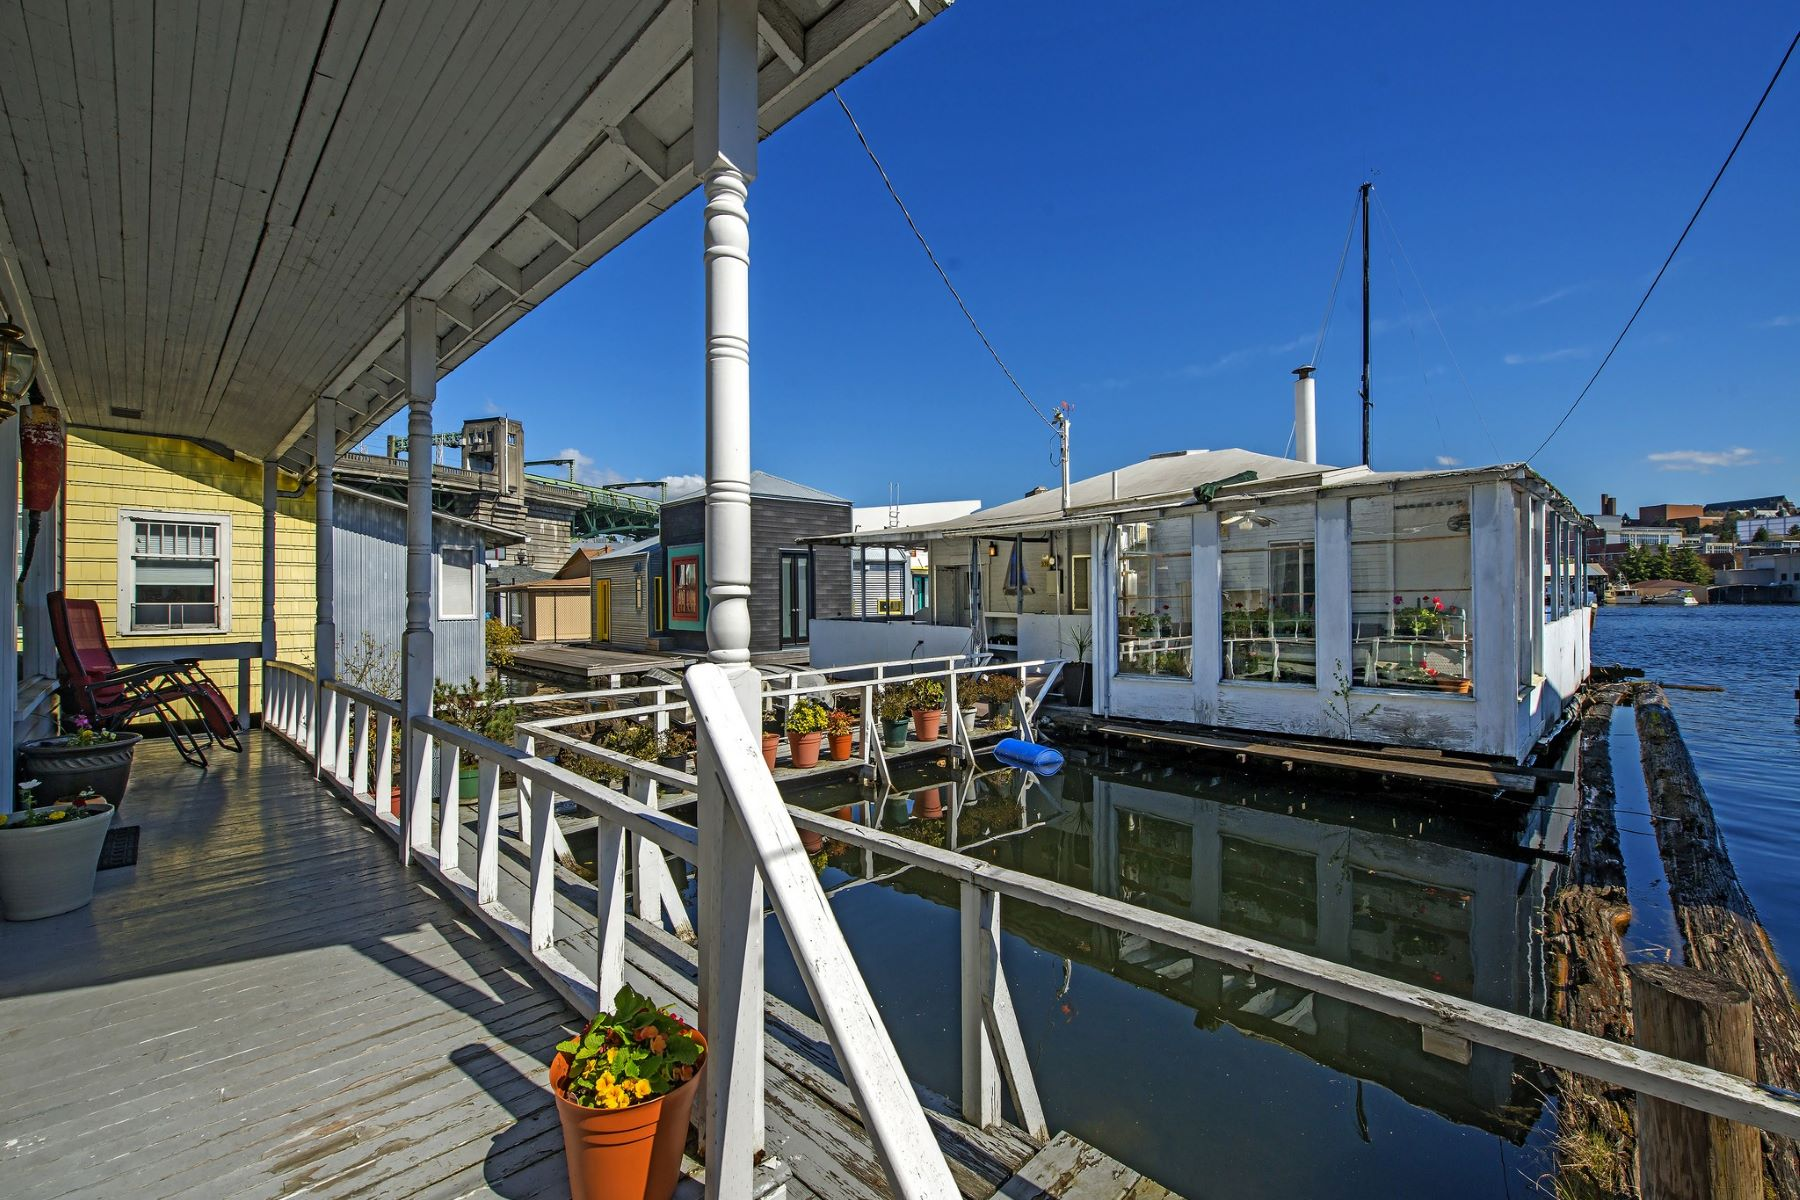 Single Family Home for Sale at Portage Bay Houseboat and Cottage 3240 Portage Bay Place E Seattle, Washington 98102 United States